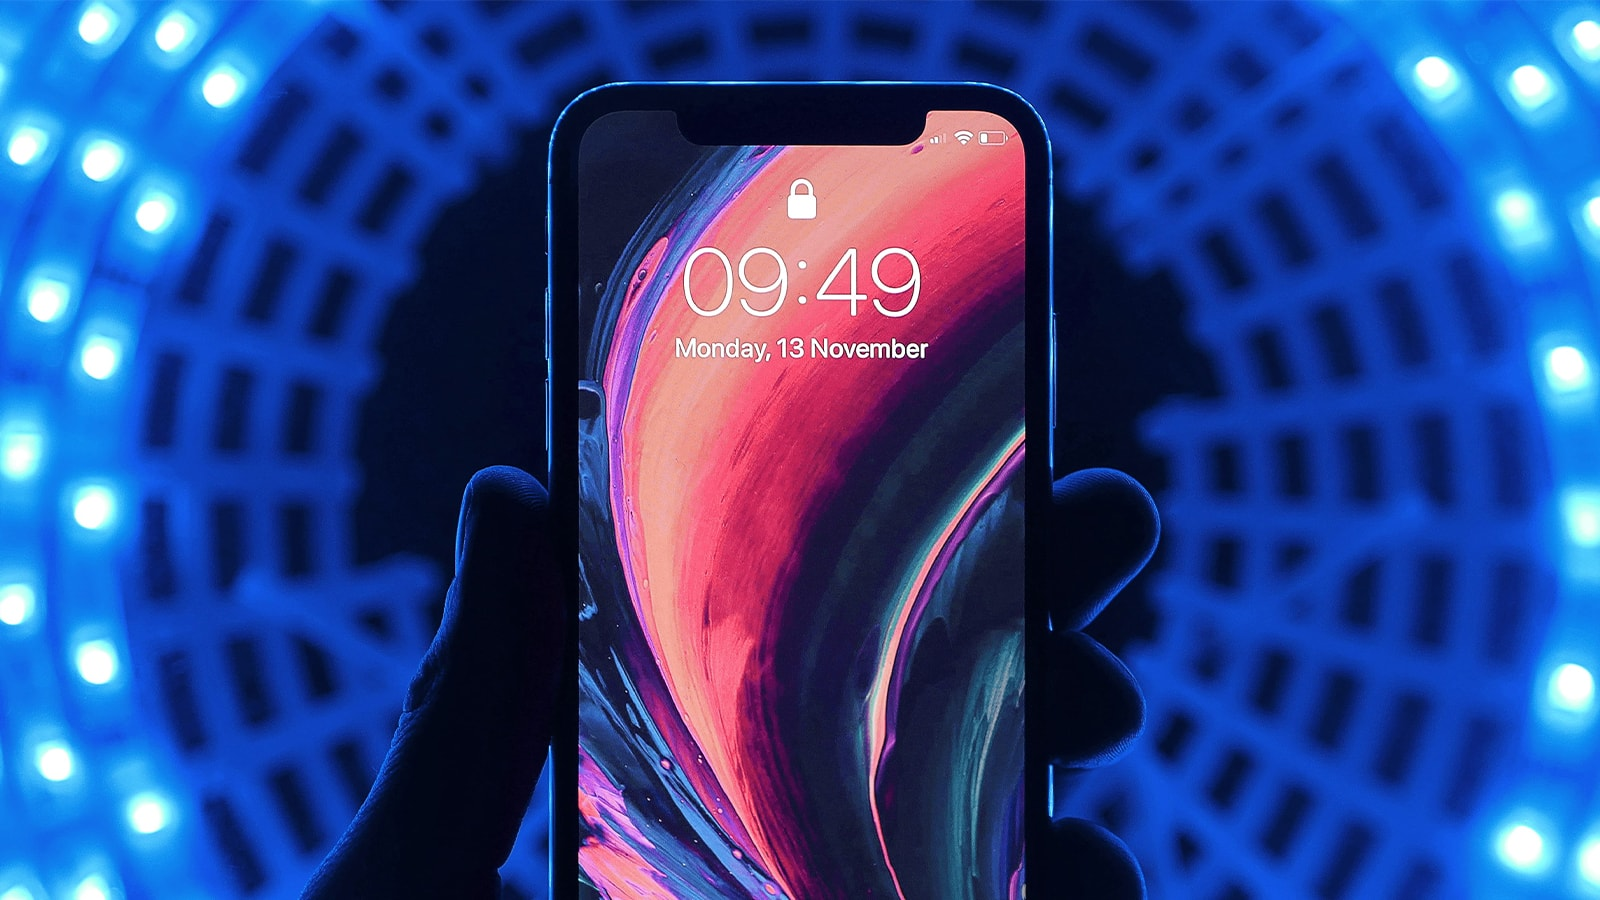 Leaked iPhone 13 Photograph Shows Smaller Notch